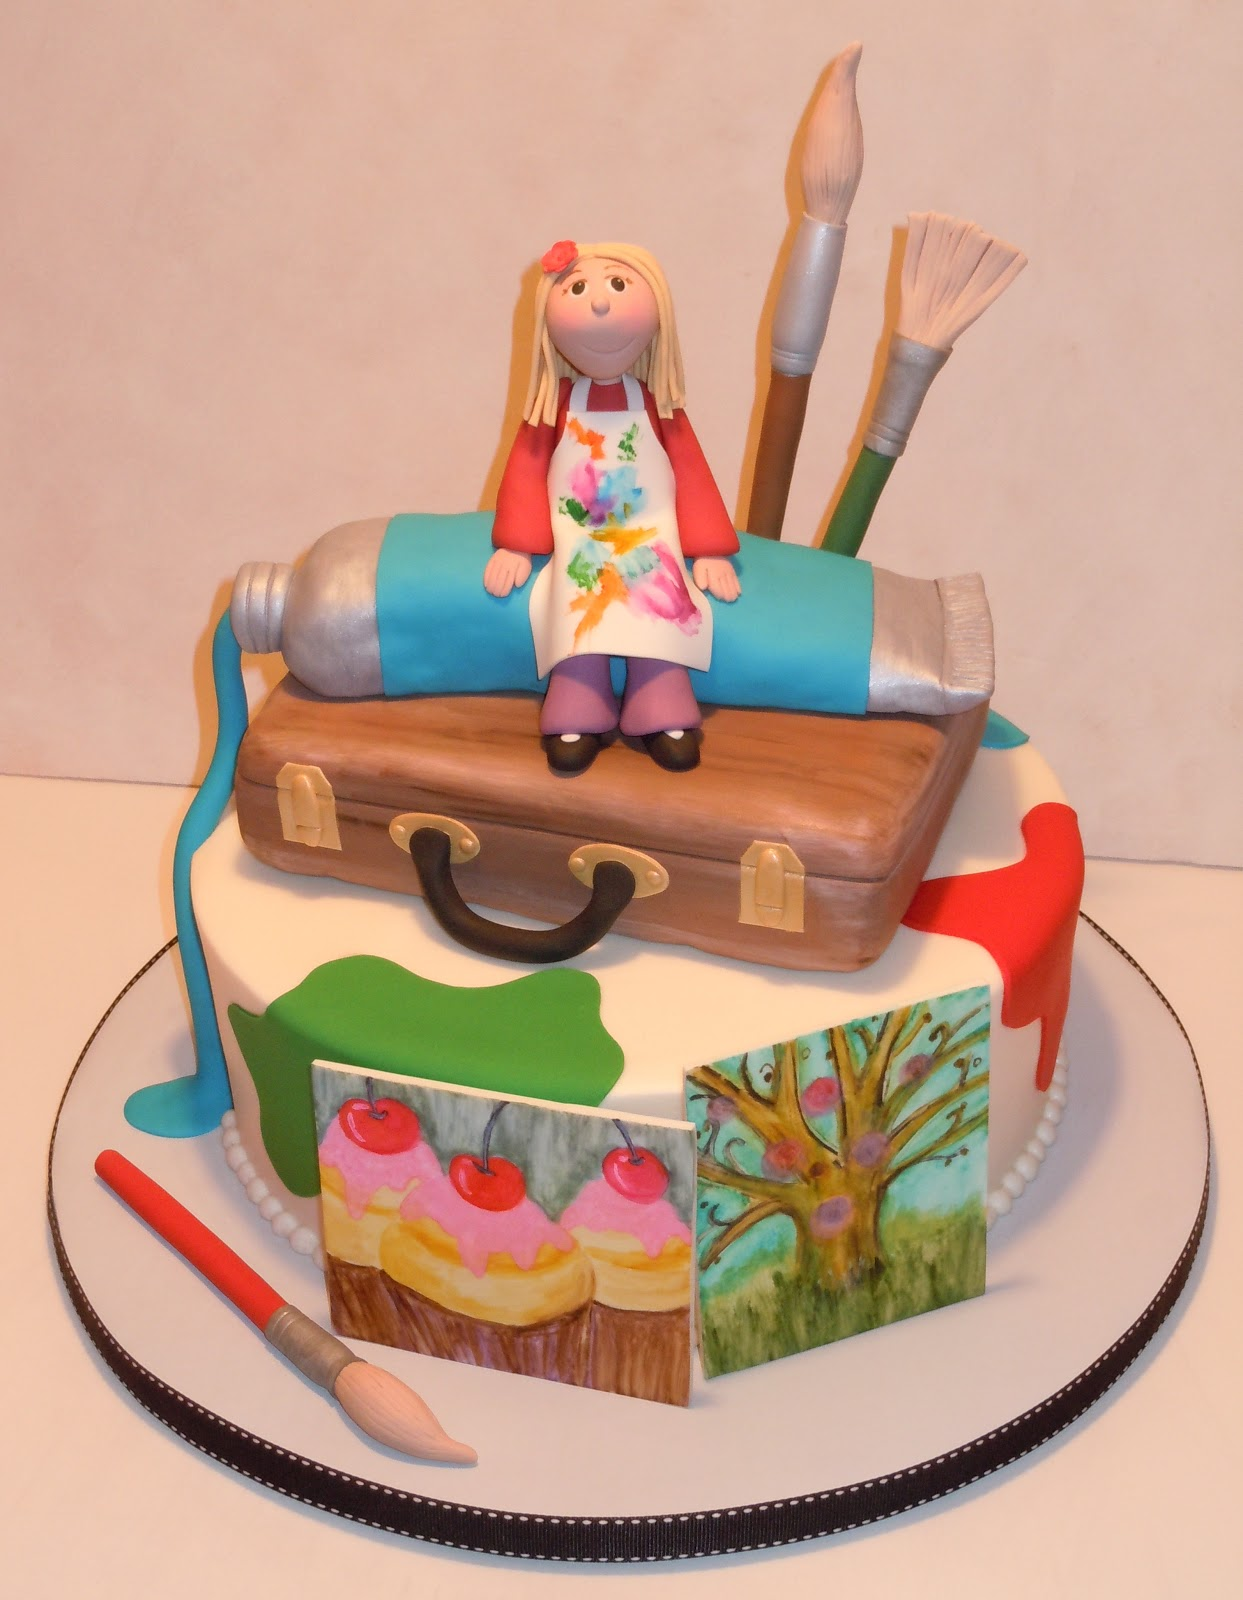 Cake Ideas For Artist : Kids Birthday cakes on Pinterest Rainbow Cakes, Artist ...